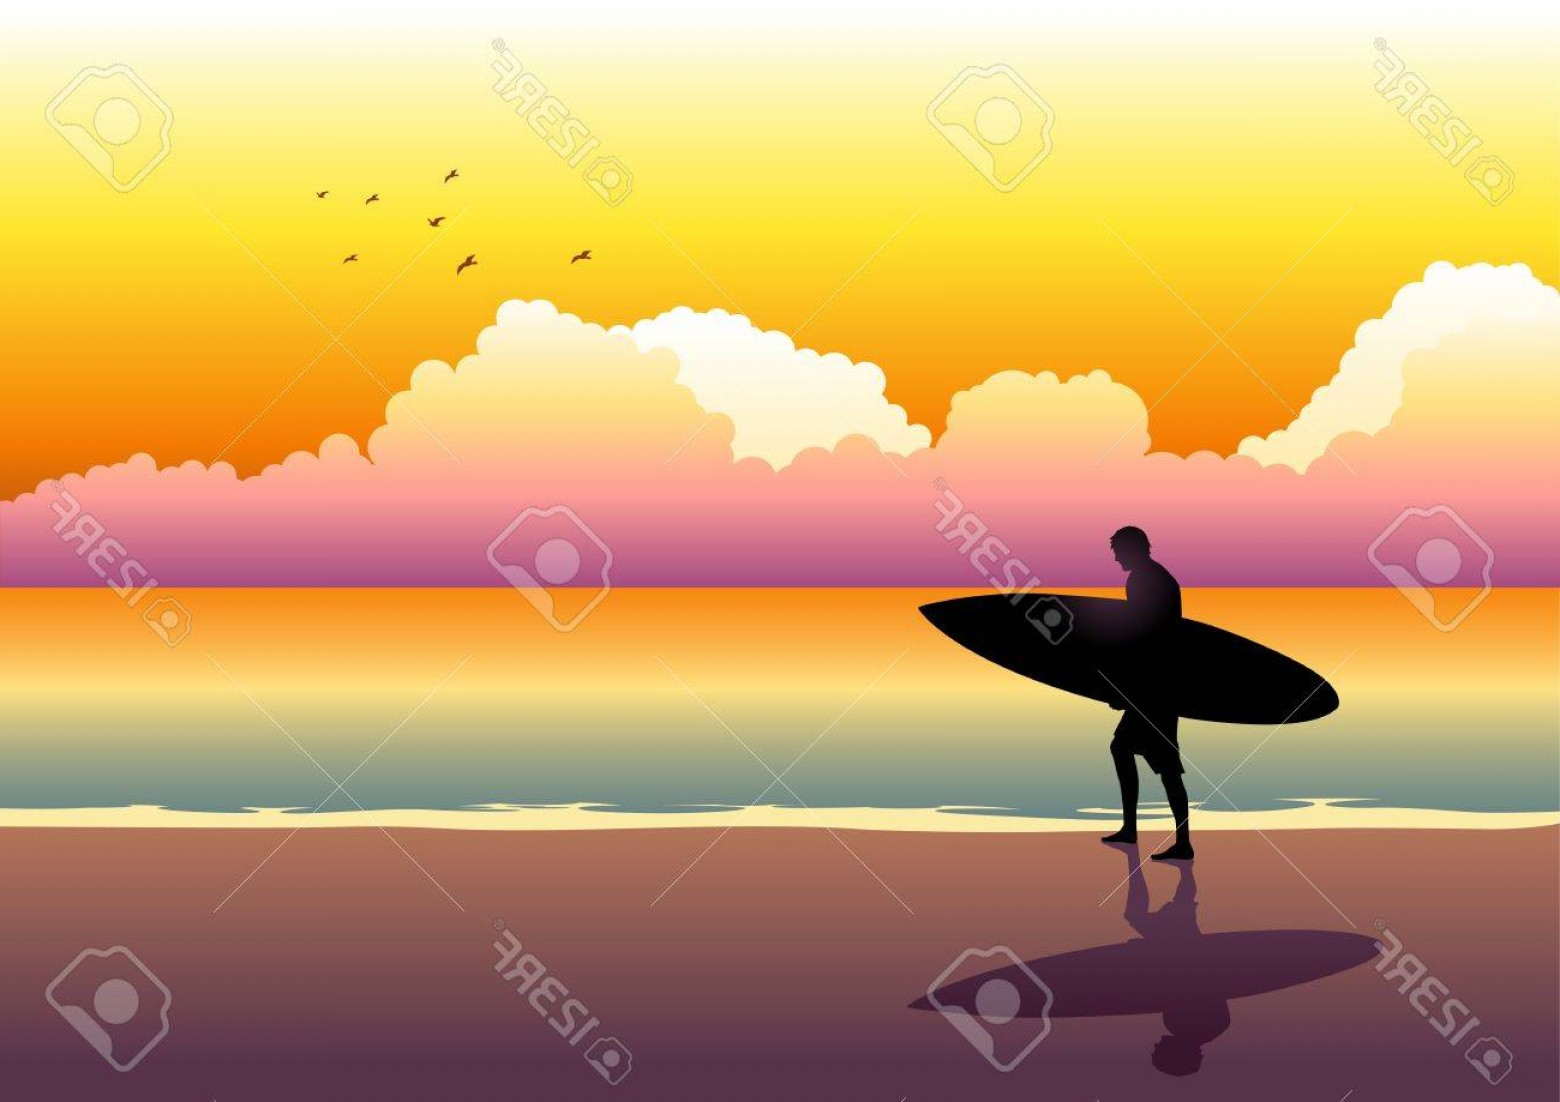 Surfer Beach Sunset Vector: Photoillustration Of A Surfer Walking At The Beach During Sunset